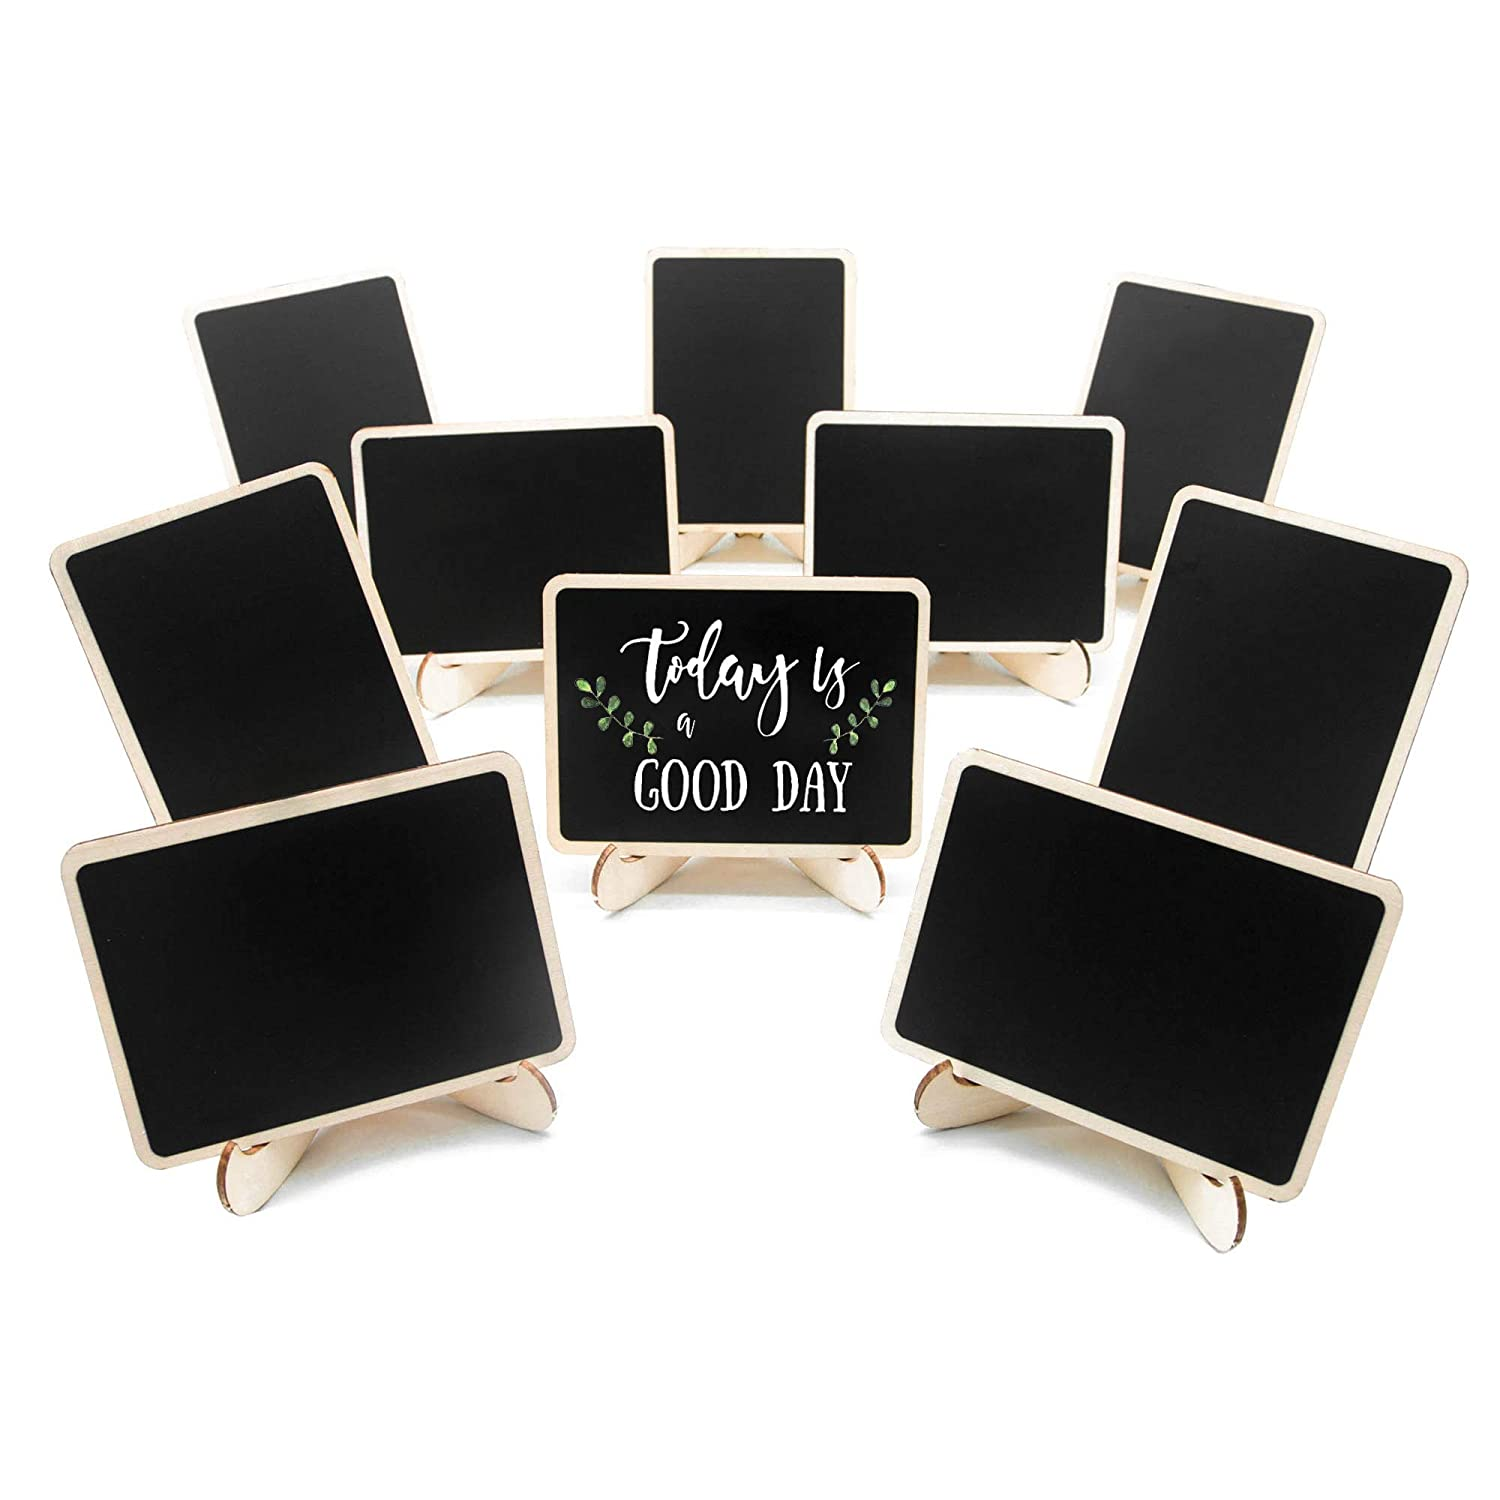 10 Pack Mini Chalkboards Signs with Easel Stand, Small Rectangle Chalkboards Blackboard, Wood Place Cards for Weddings, Birthday Parties, Message Board Signs and Event Decoration Coofficer